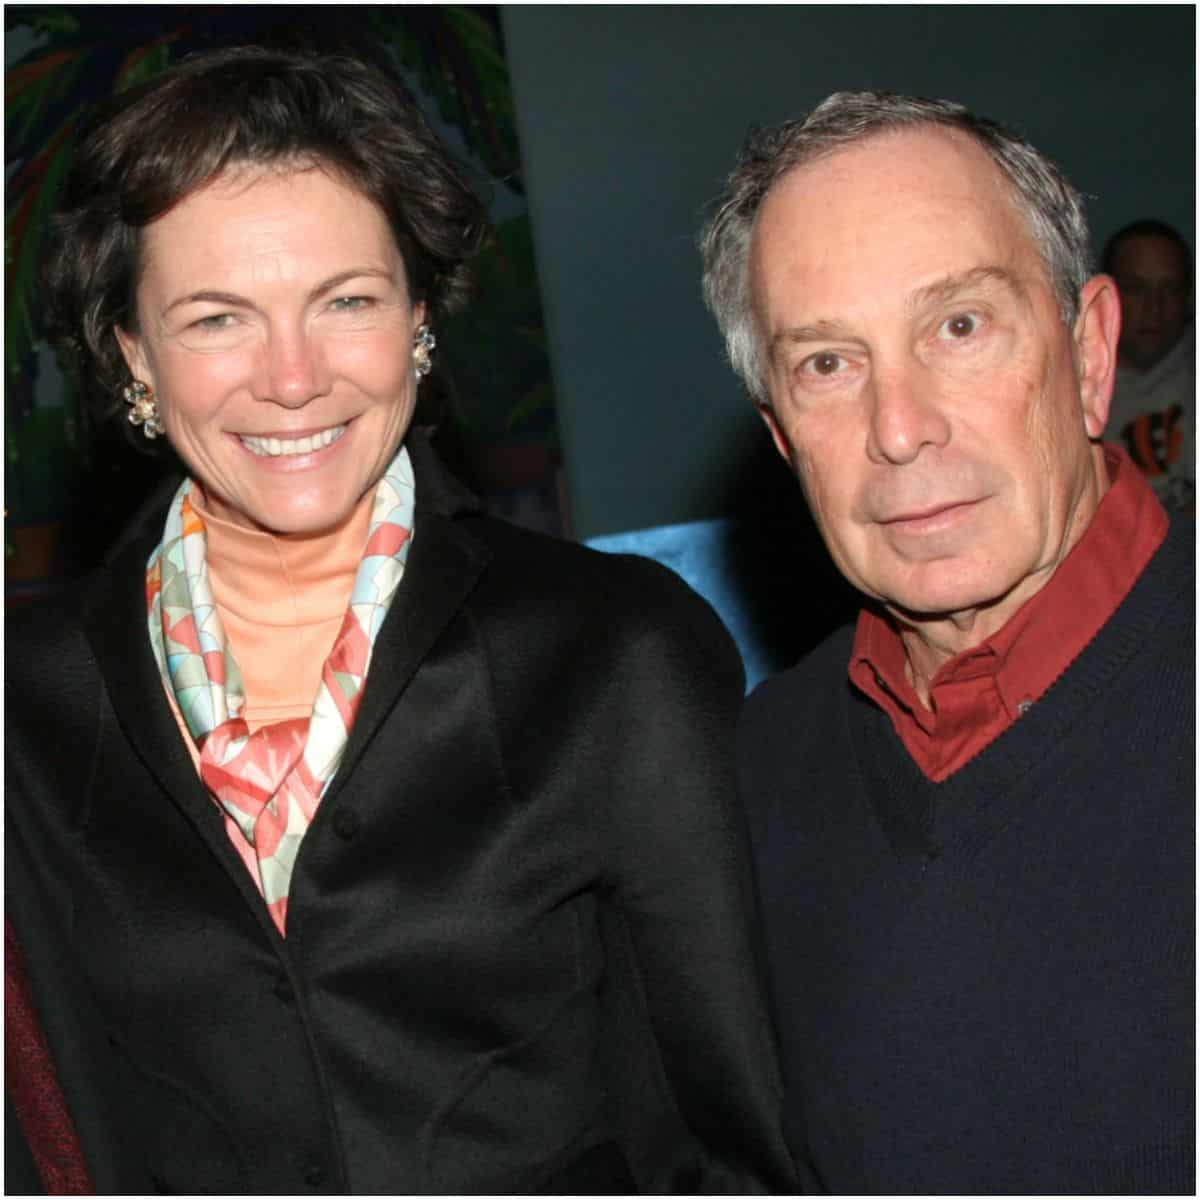 Diana Taylor and her boyfriend Mike Bloomberg